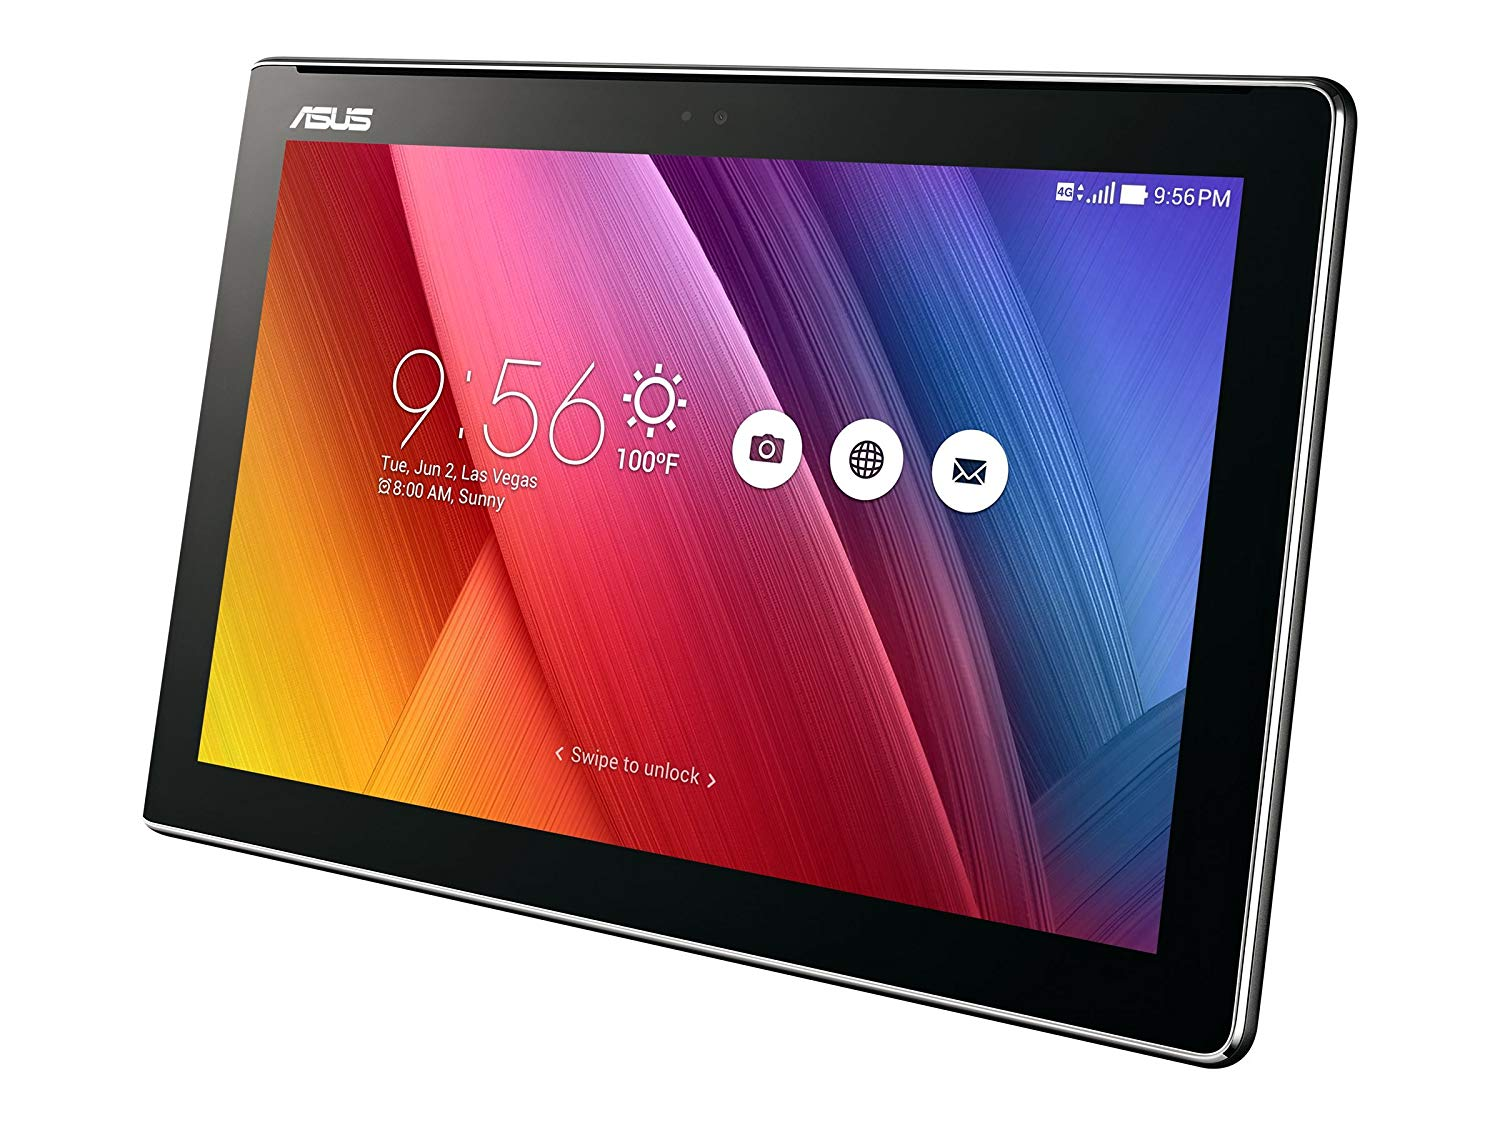 asus zenpad tablet black usywxkl tablette accent fast computers accessories square garden furniture covers orange decor tiny end table inexpensive tablecloths valley city led